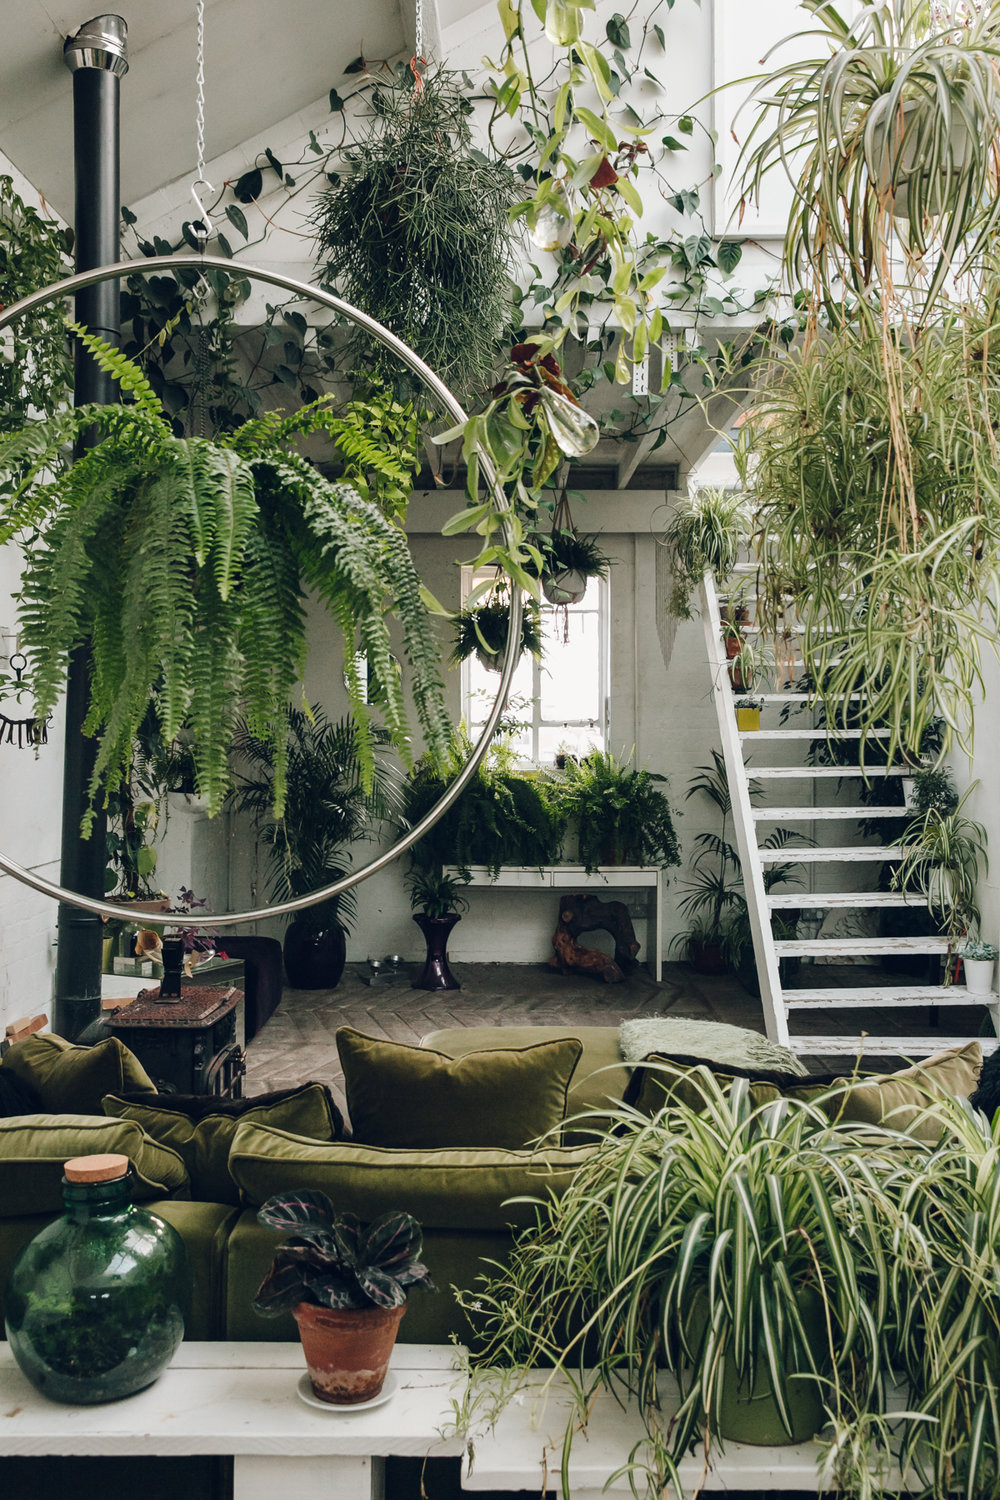 Inside Clapton Tram A Plant Filled Warehouse Space: interior design plants inside house